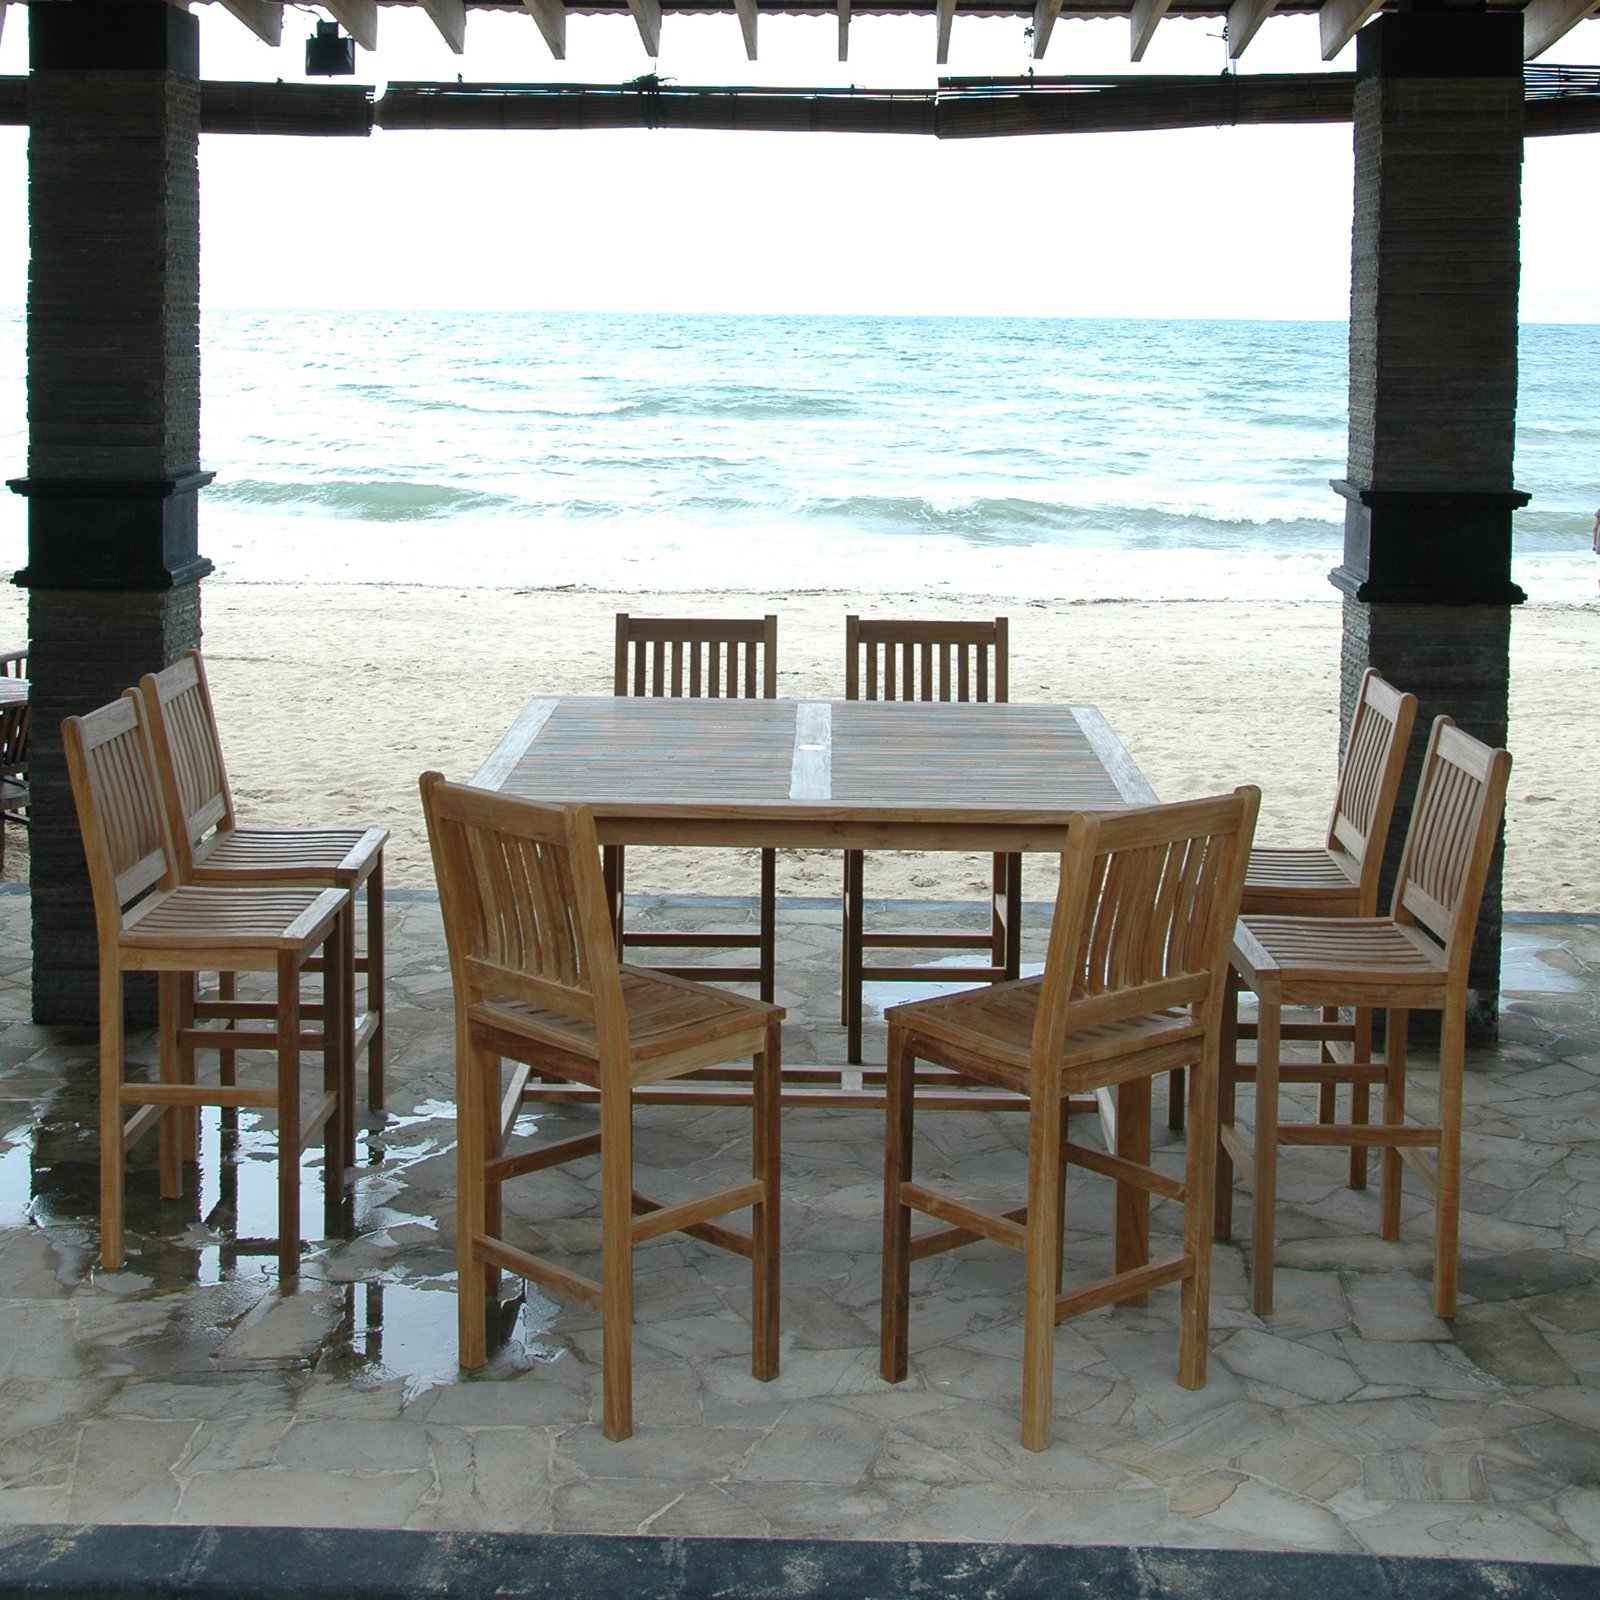 Anderson Teak Avalon 9 Piece Bar Height Patio Dining Room Set by